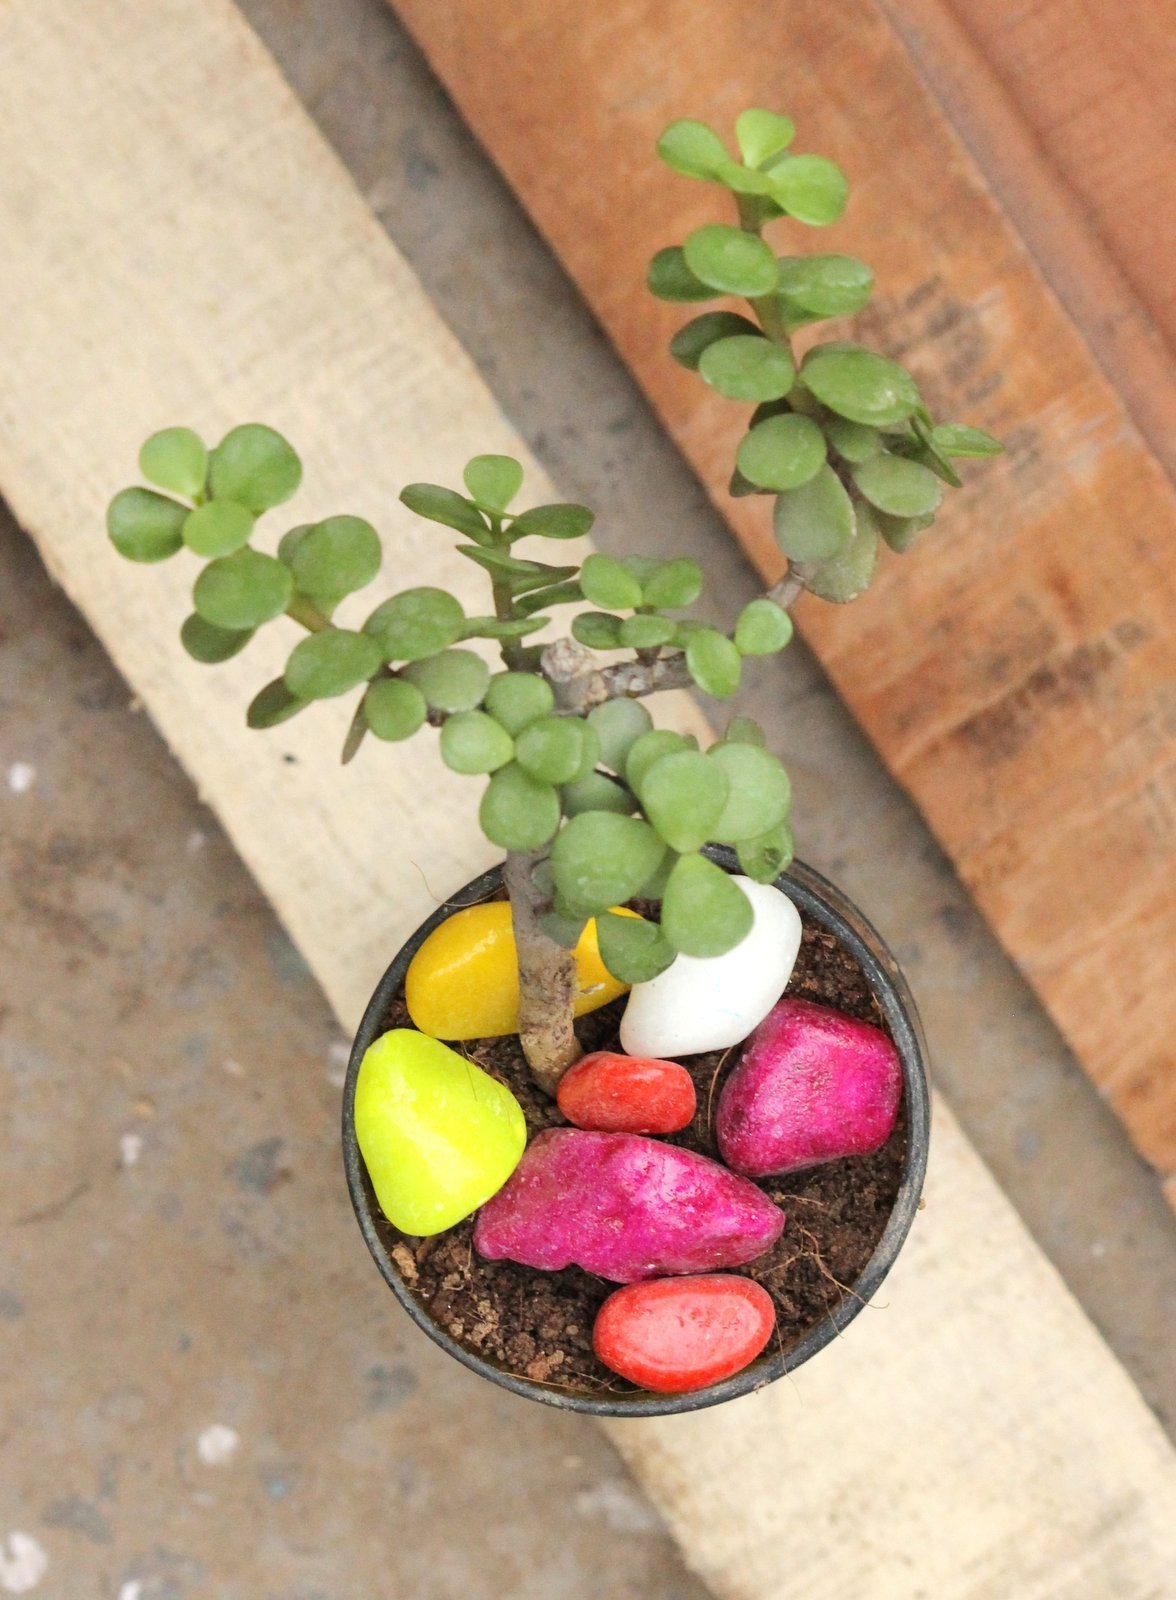 SELF WATERING PLANTER-JADE PLANT - Buy Eco Friendly Products - Upycled, Organic, Fair Trade :: Green The Map